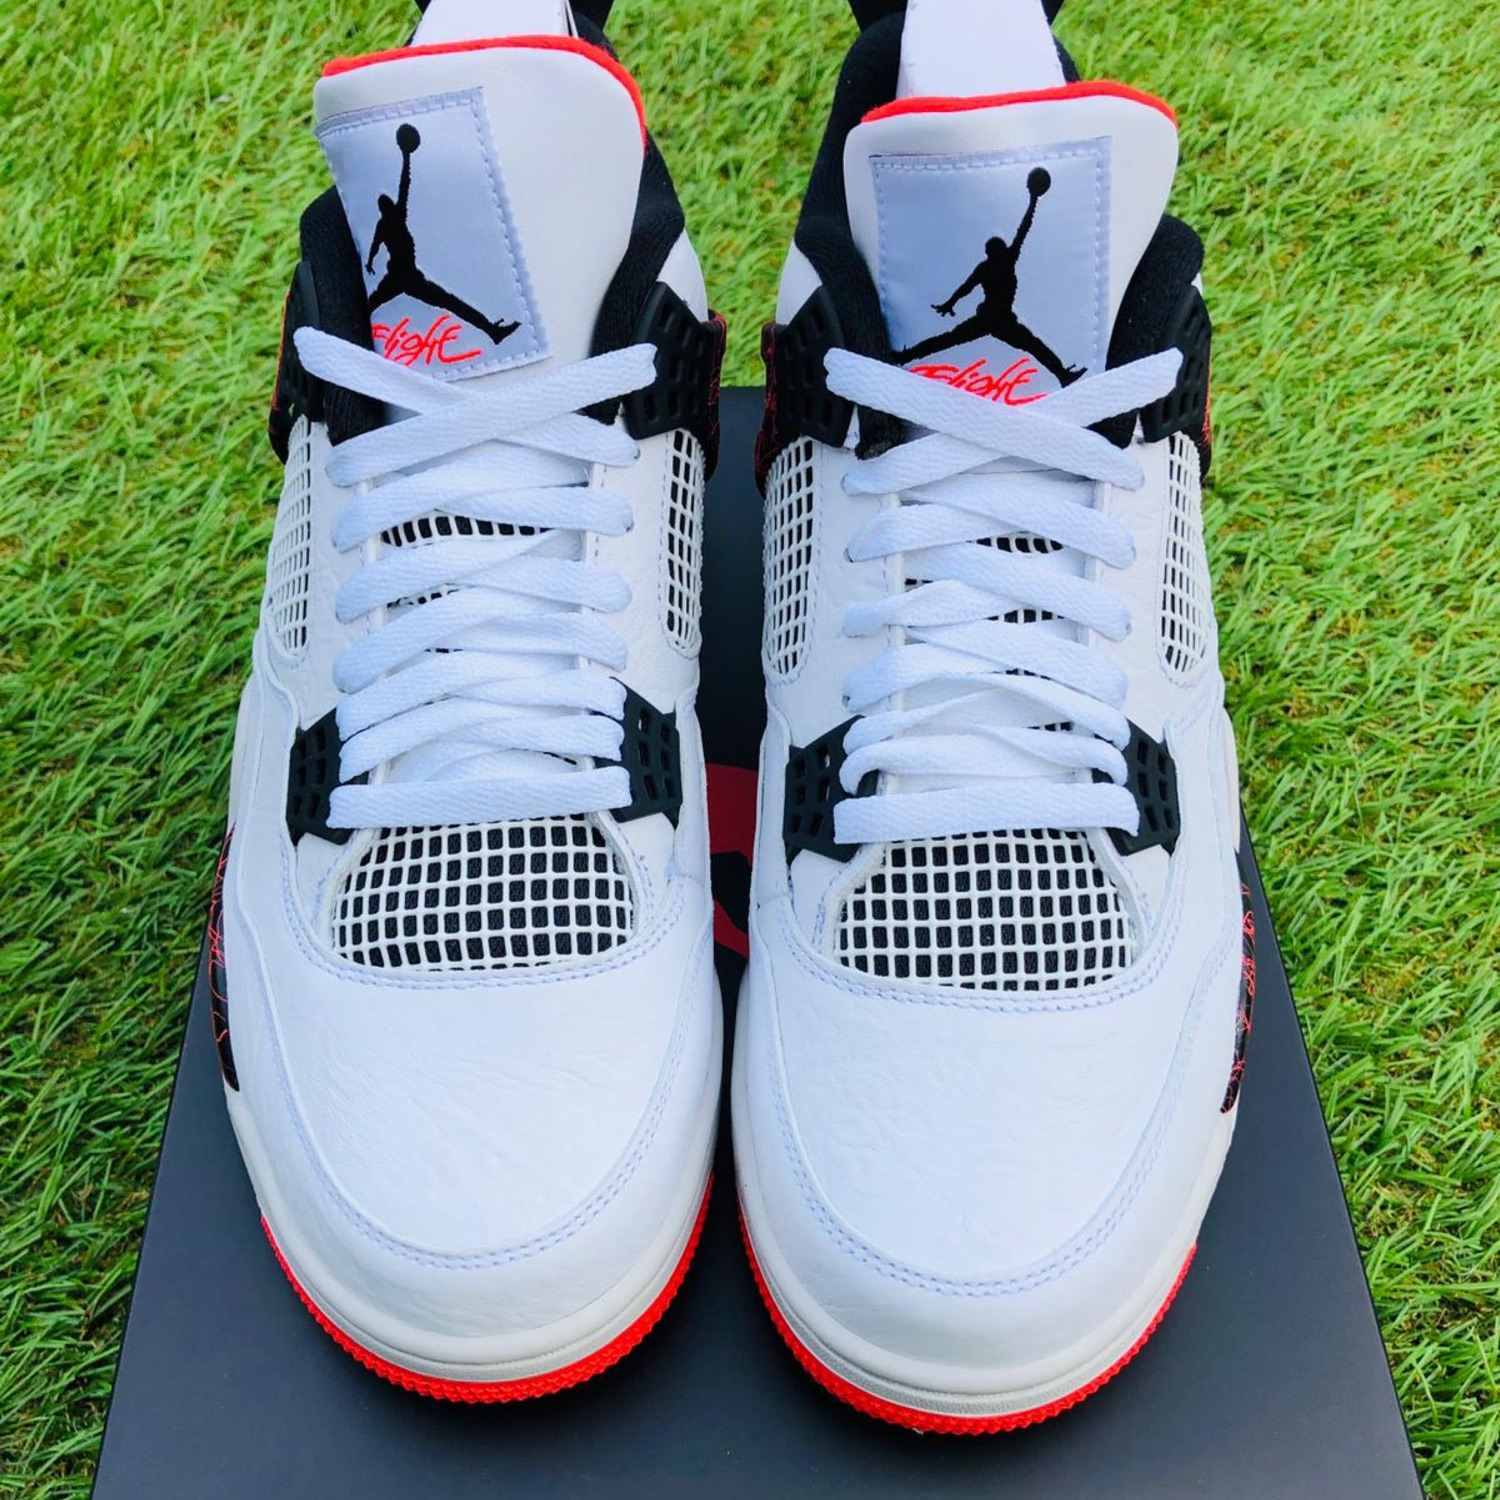 5f25332170a Nike Air Jordan 4 Retro Flight Nostalgia Uk 9